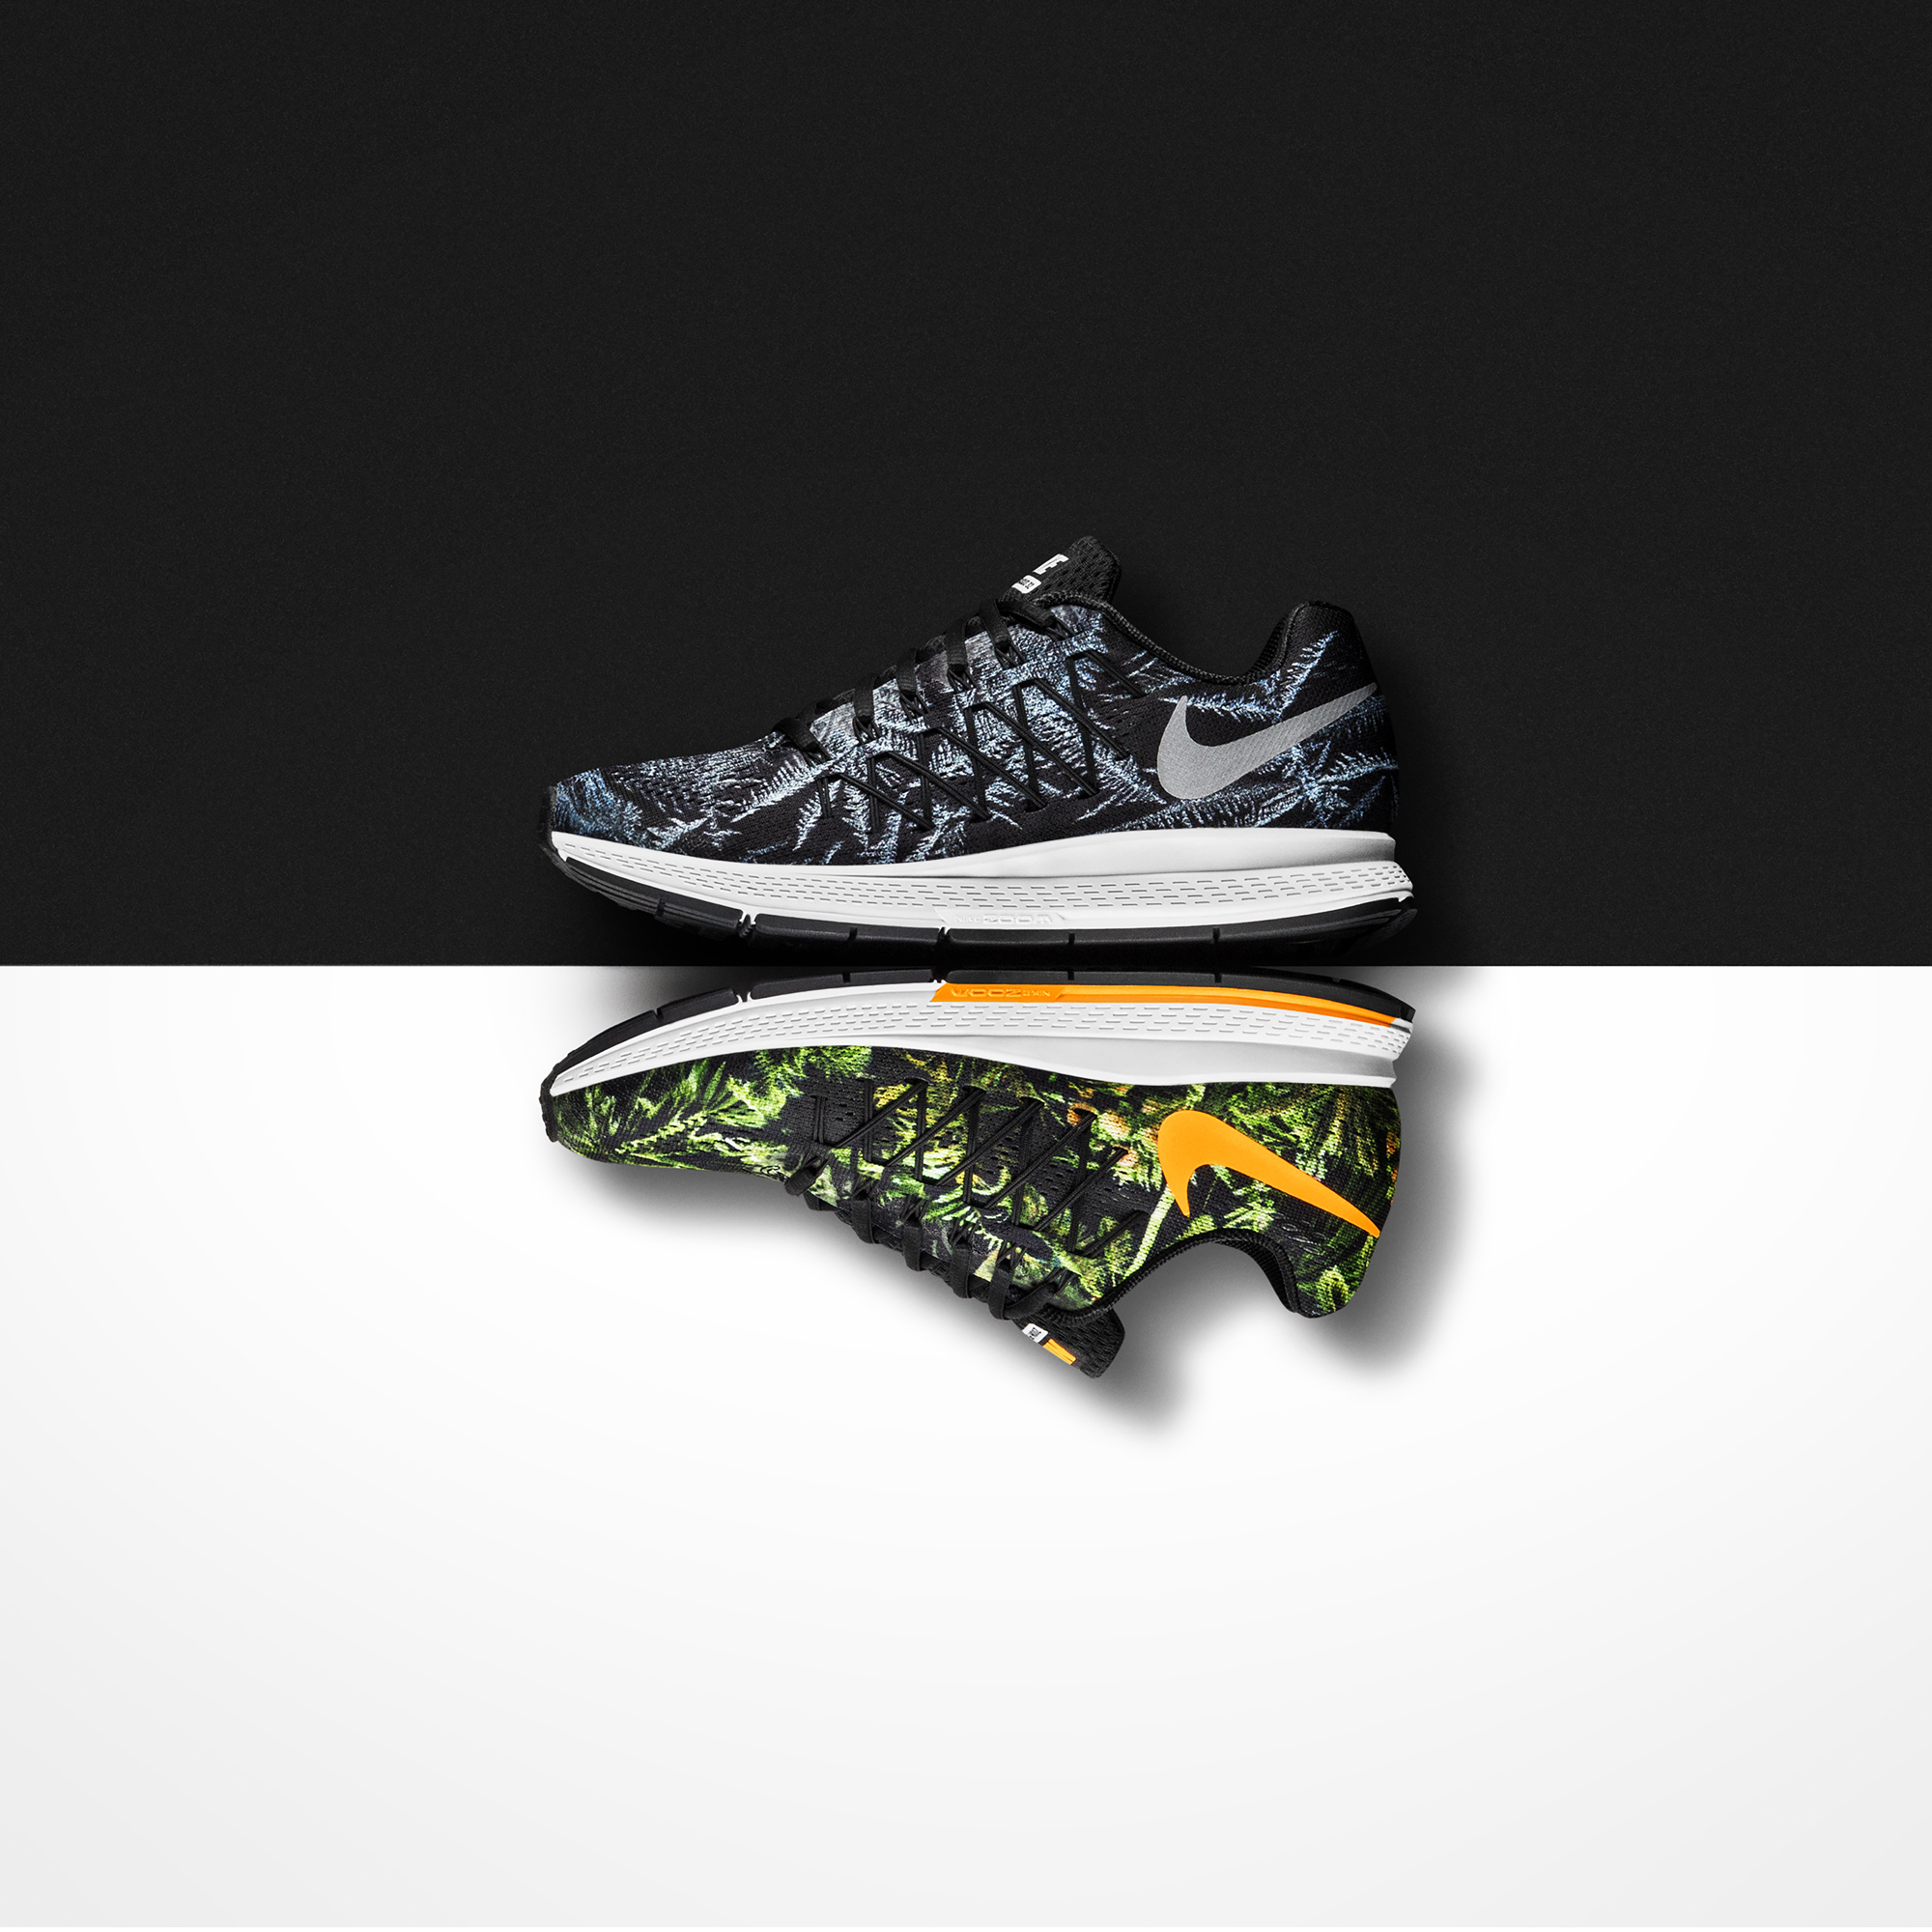 4f795212c483 ... where to buy nike free 5.0 solstice 18f6b f5f5a